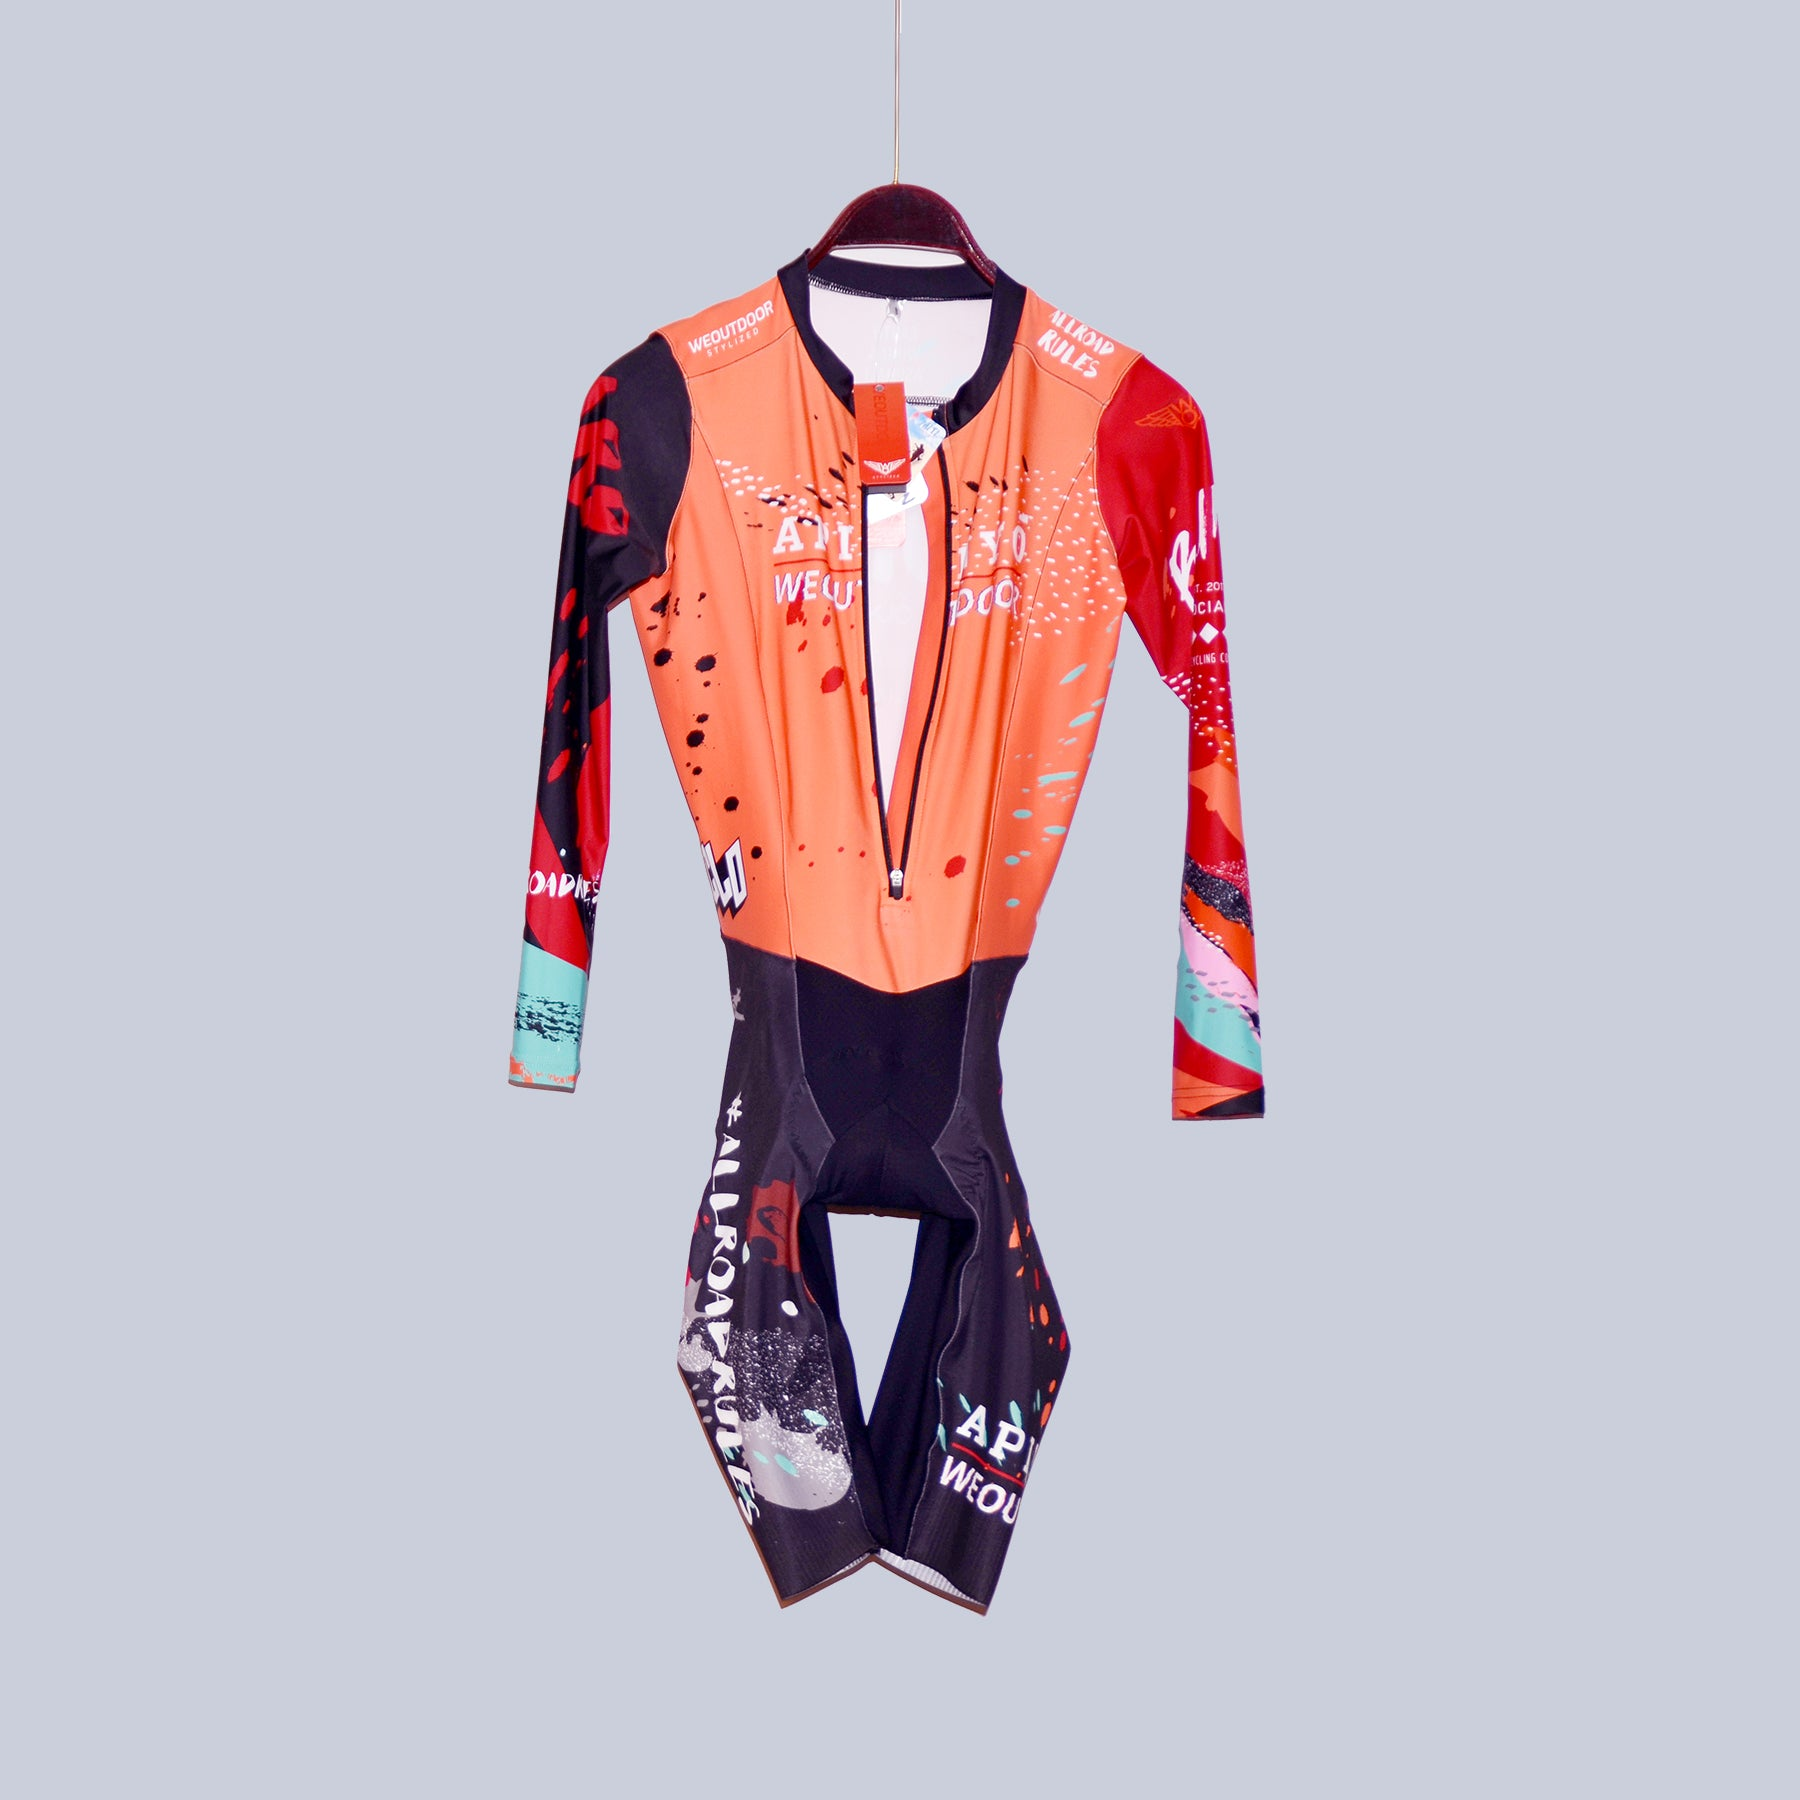 XCX SUIT - WEOUTDOOR